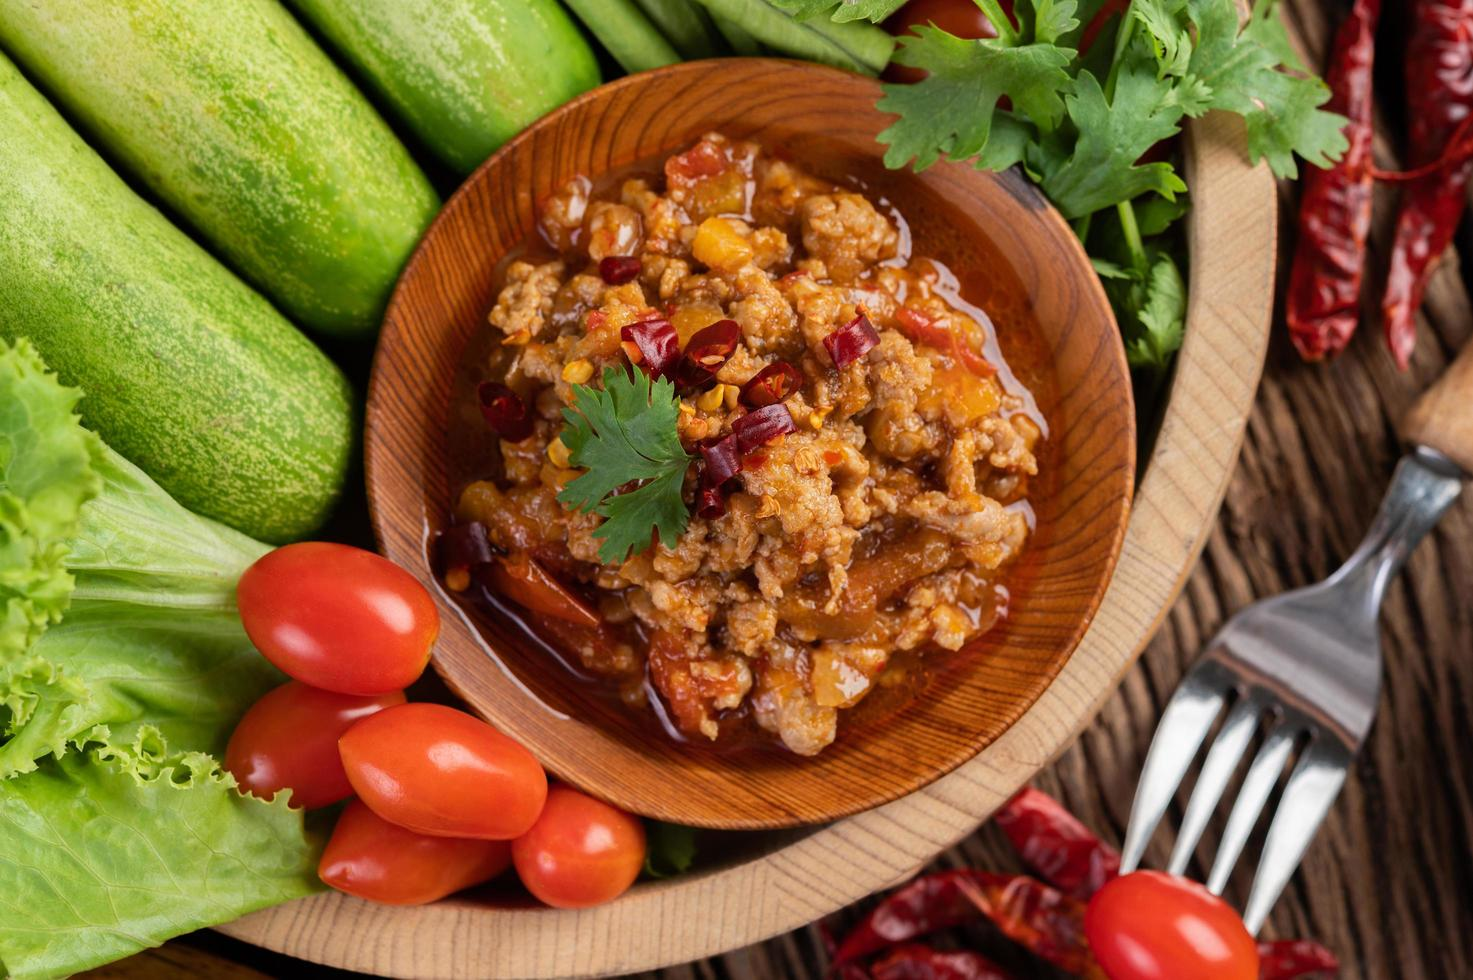 Sweet pork in a wooden bowl with ingredients photo